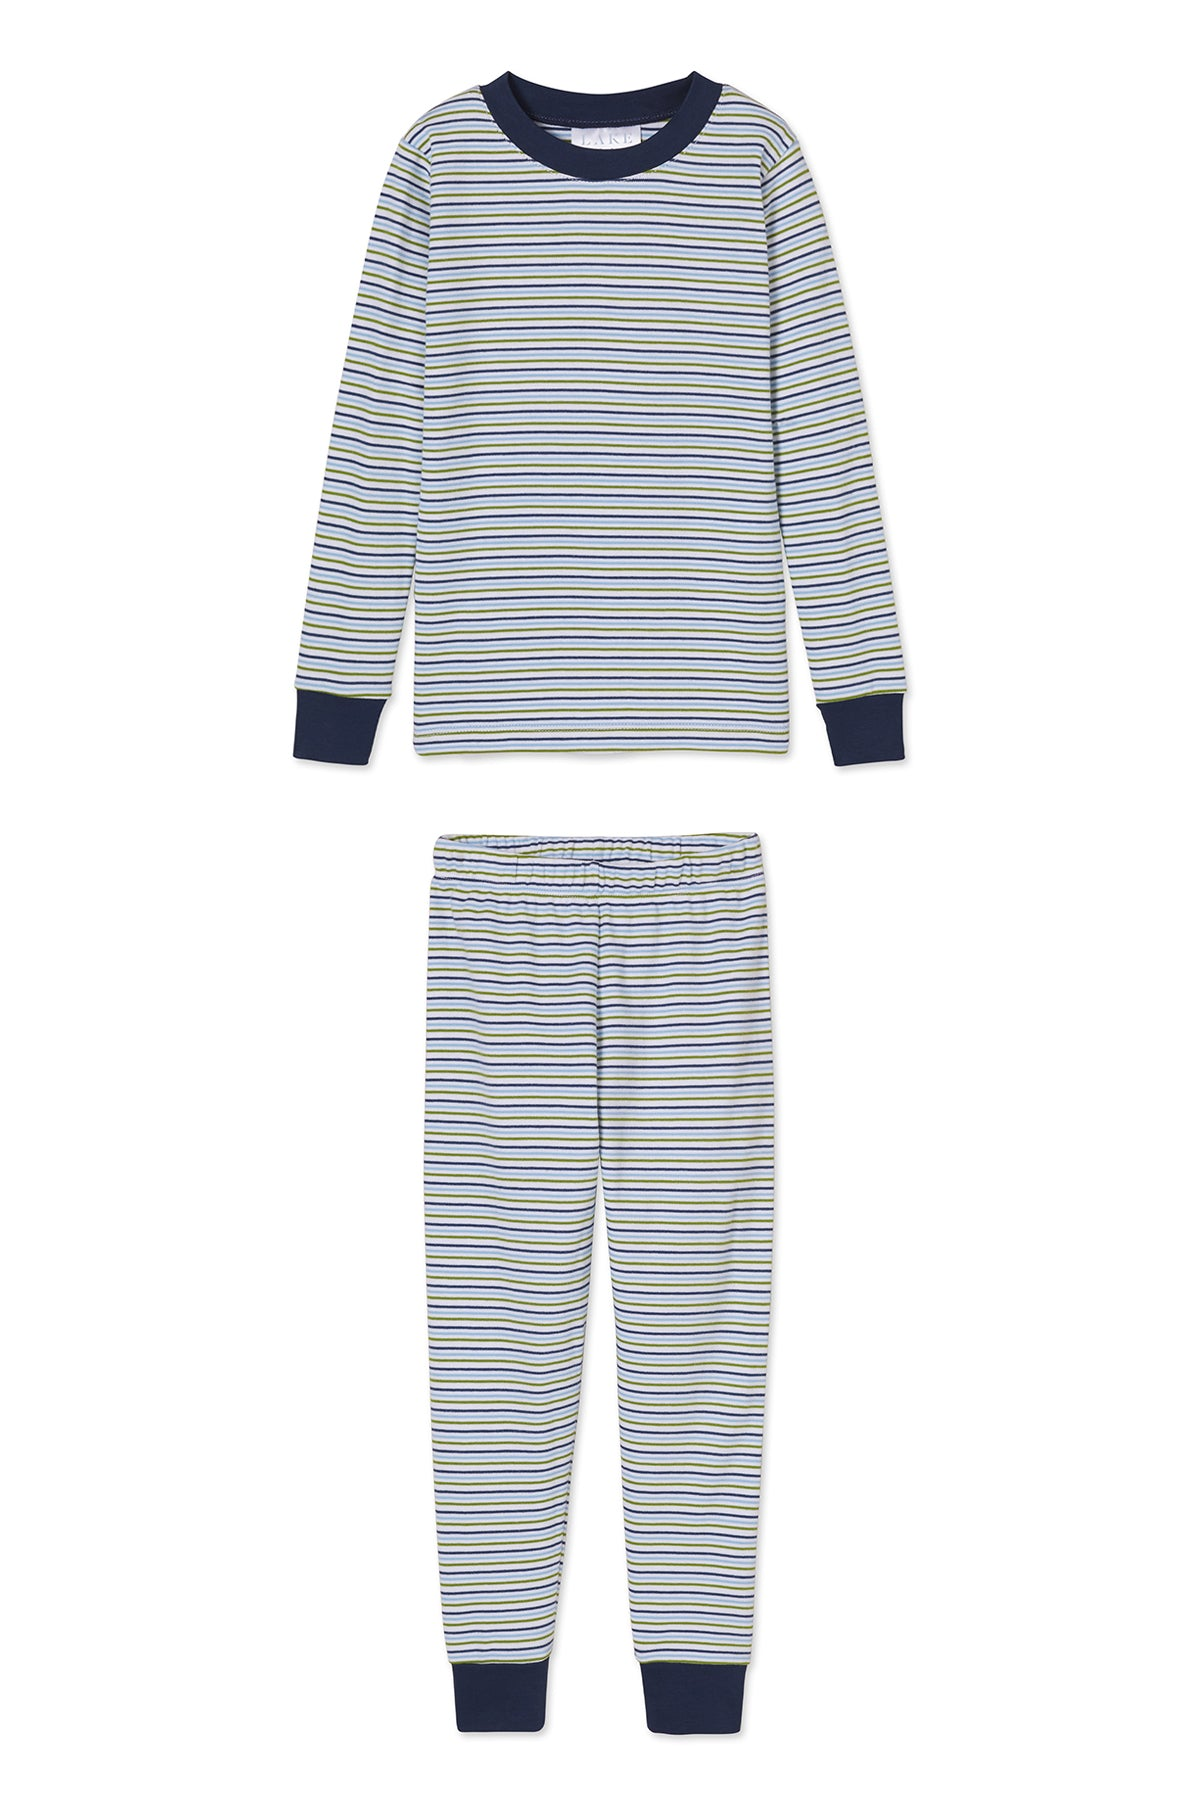 Kids Long-Long Set in Canoe Stripe